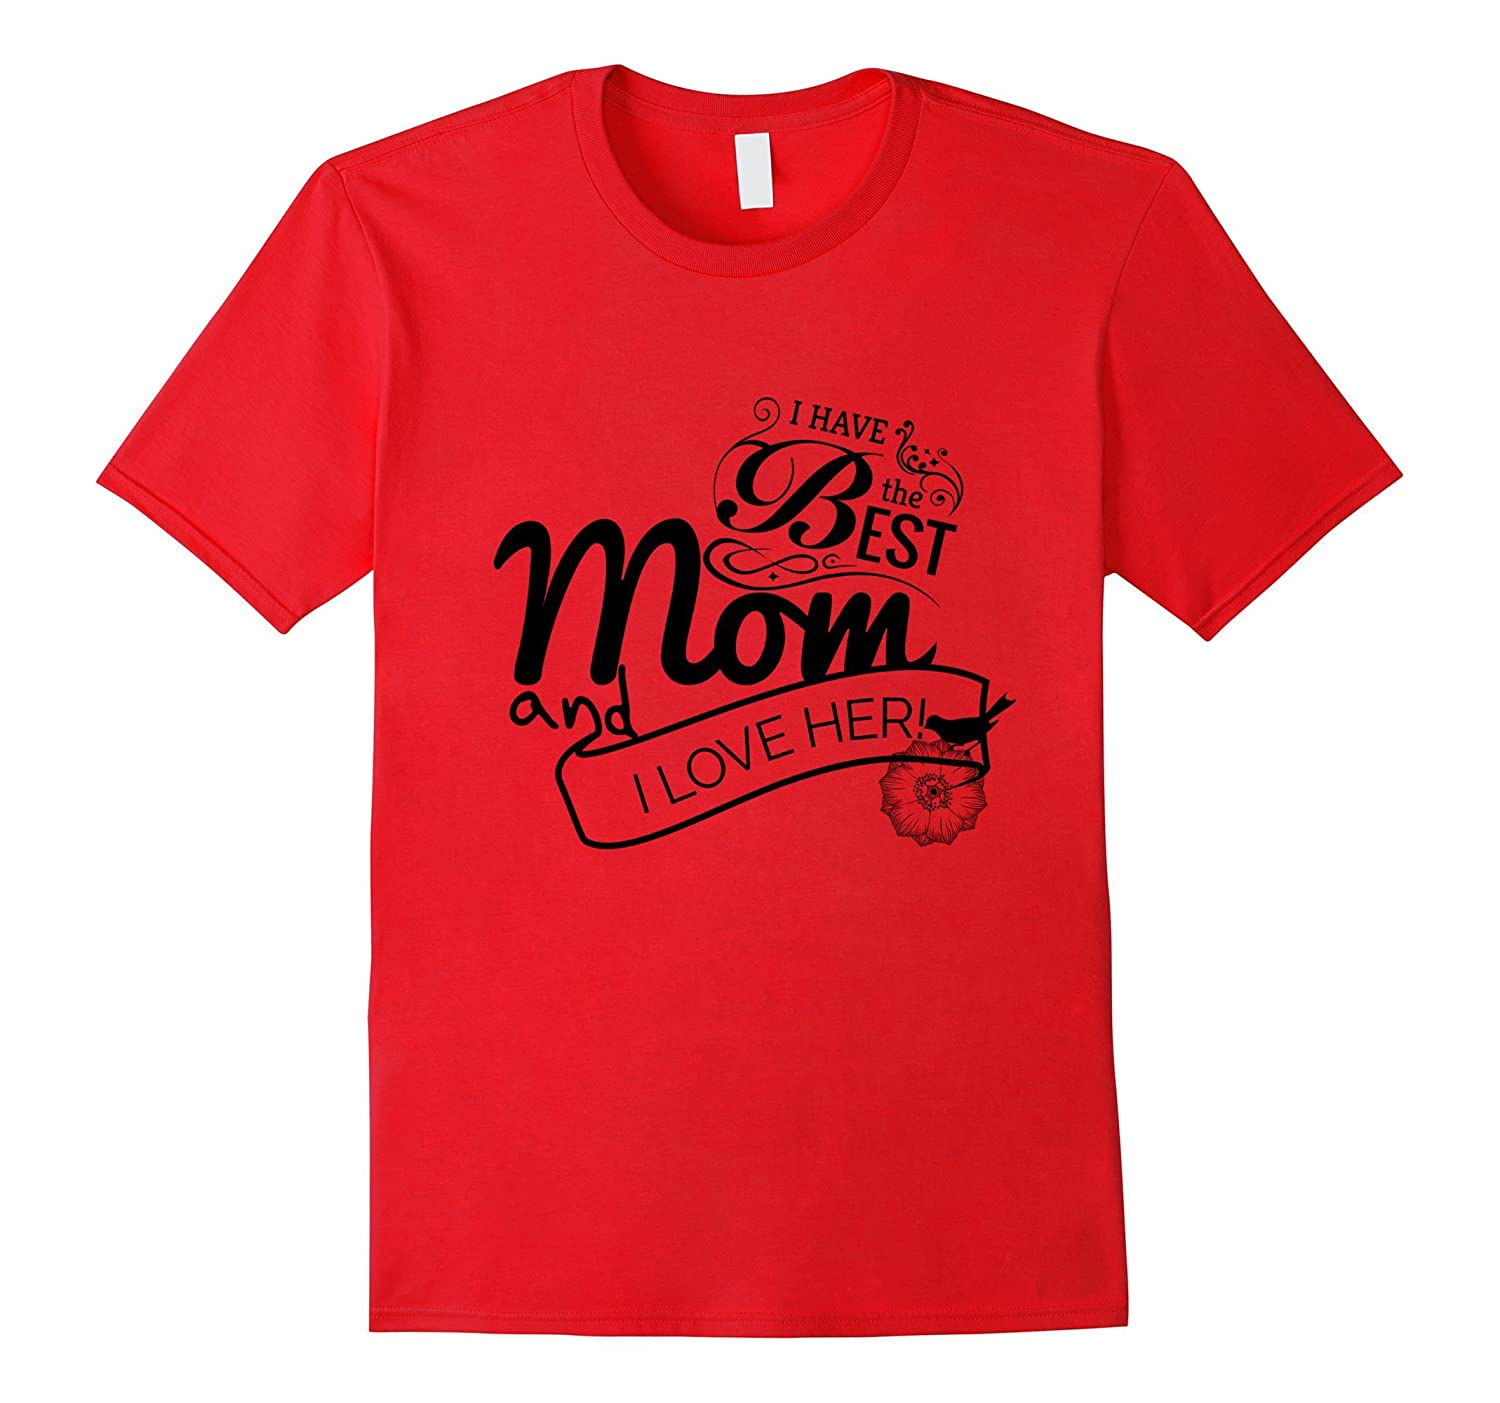 Mothers Day - I Have the Best Mom and I Love Her T-Shirt-Vaci